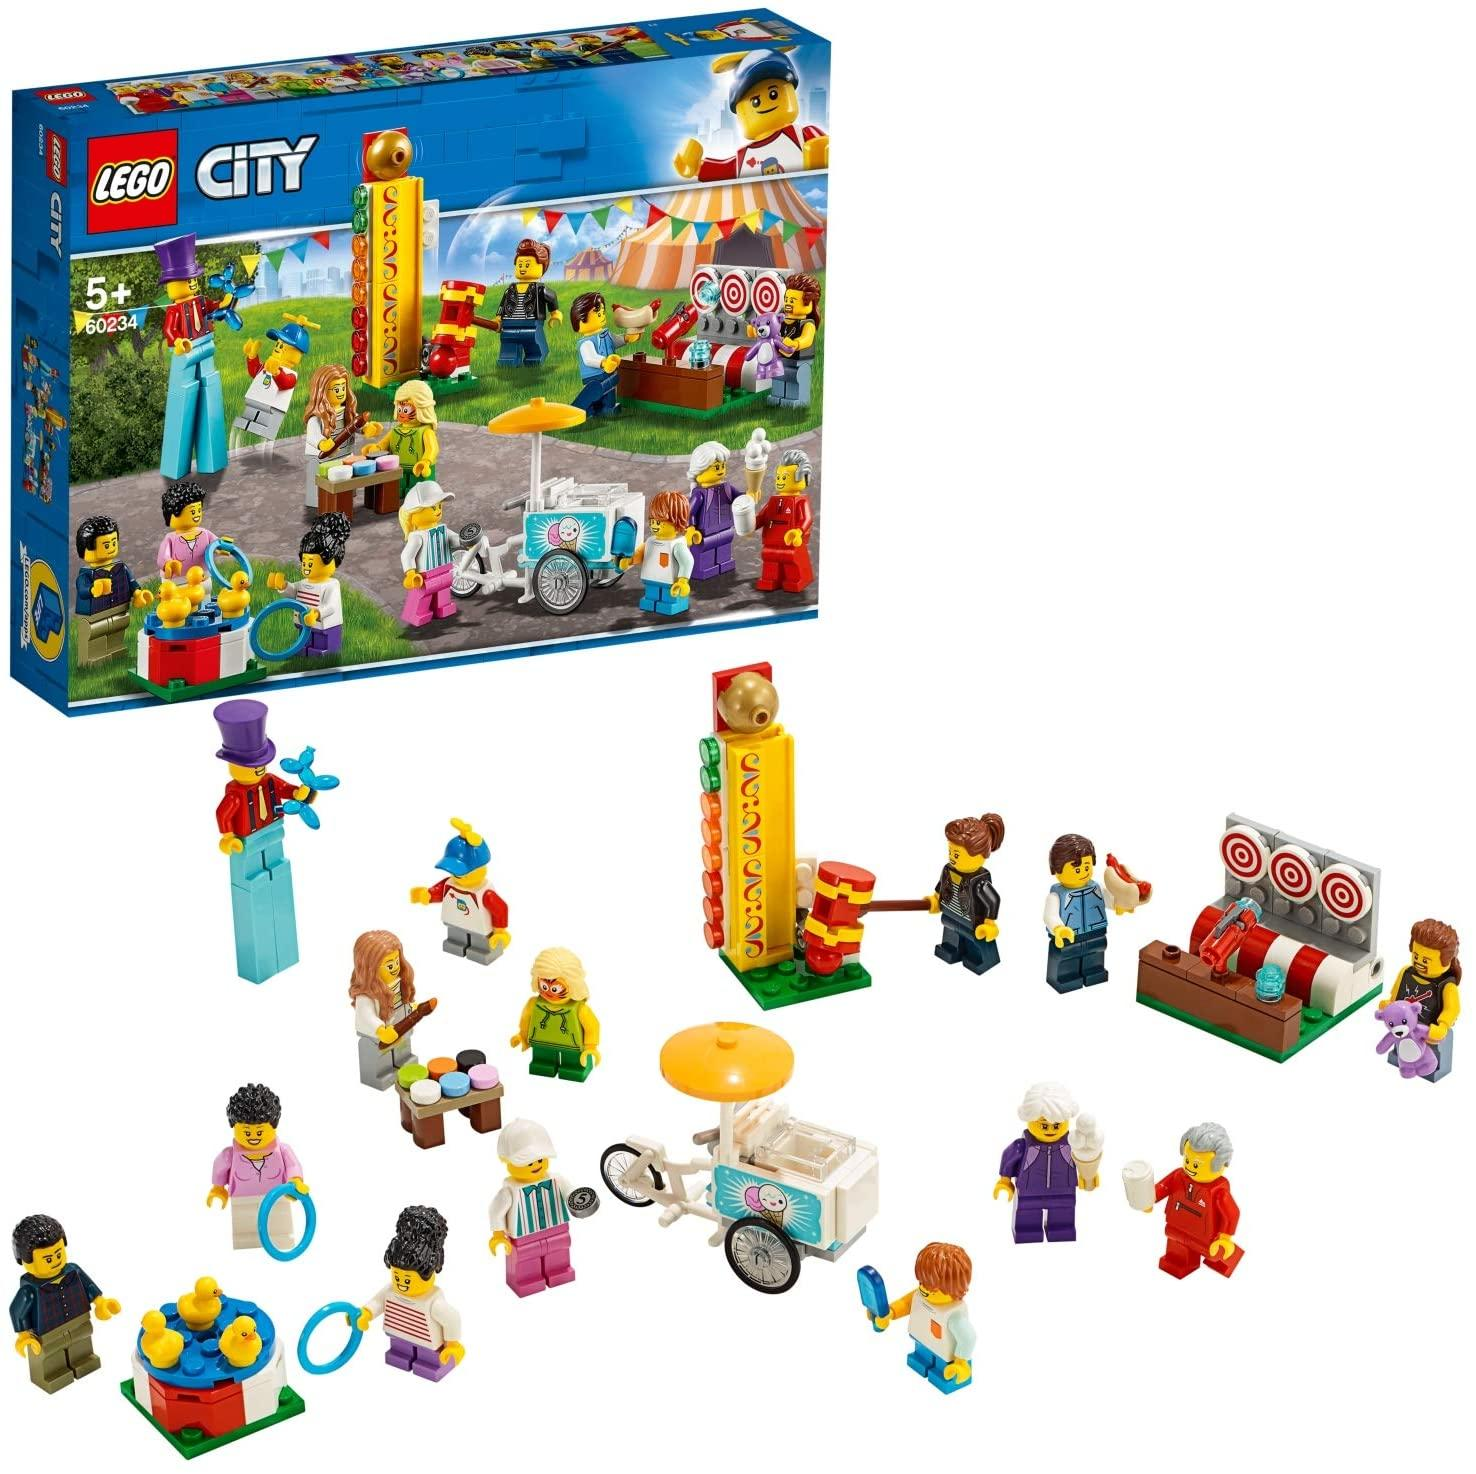 LEGO 60234 City Town People Pack - Fun Fair Toymaster Ballina